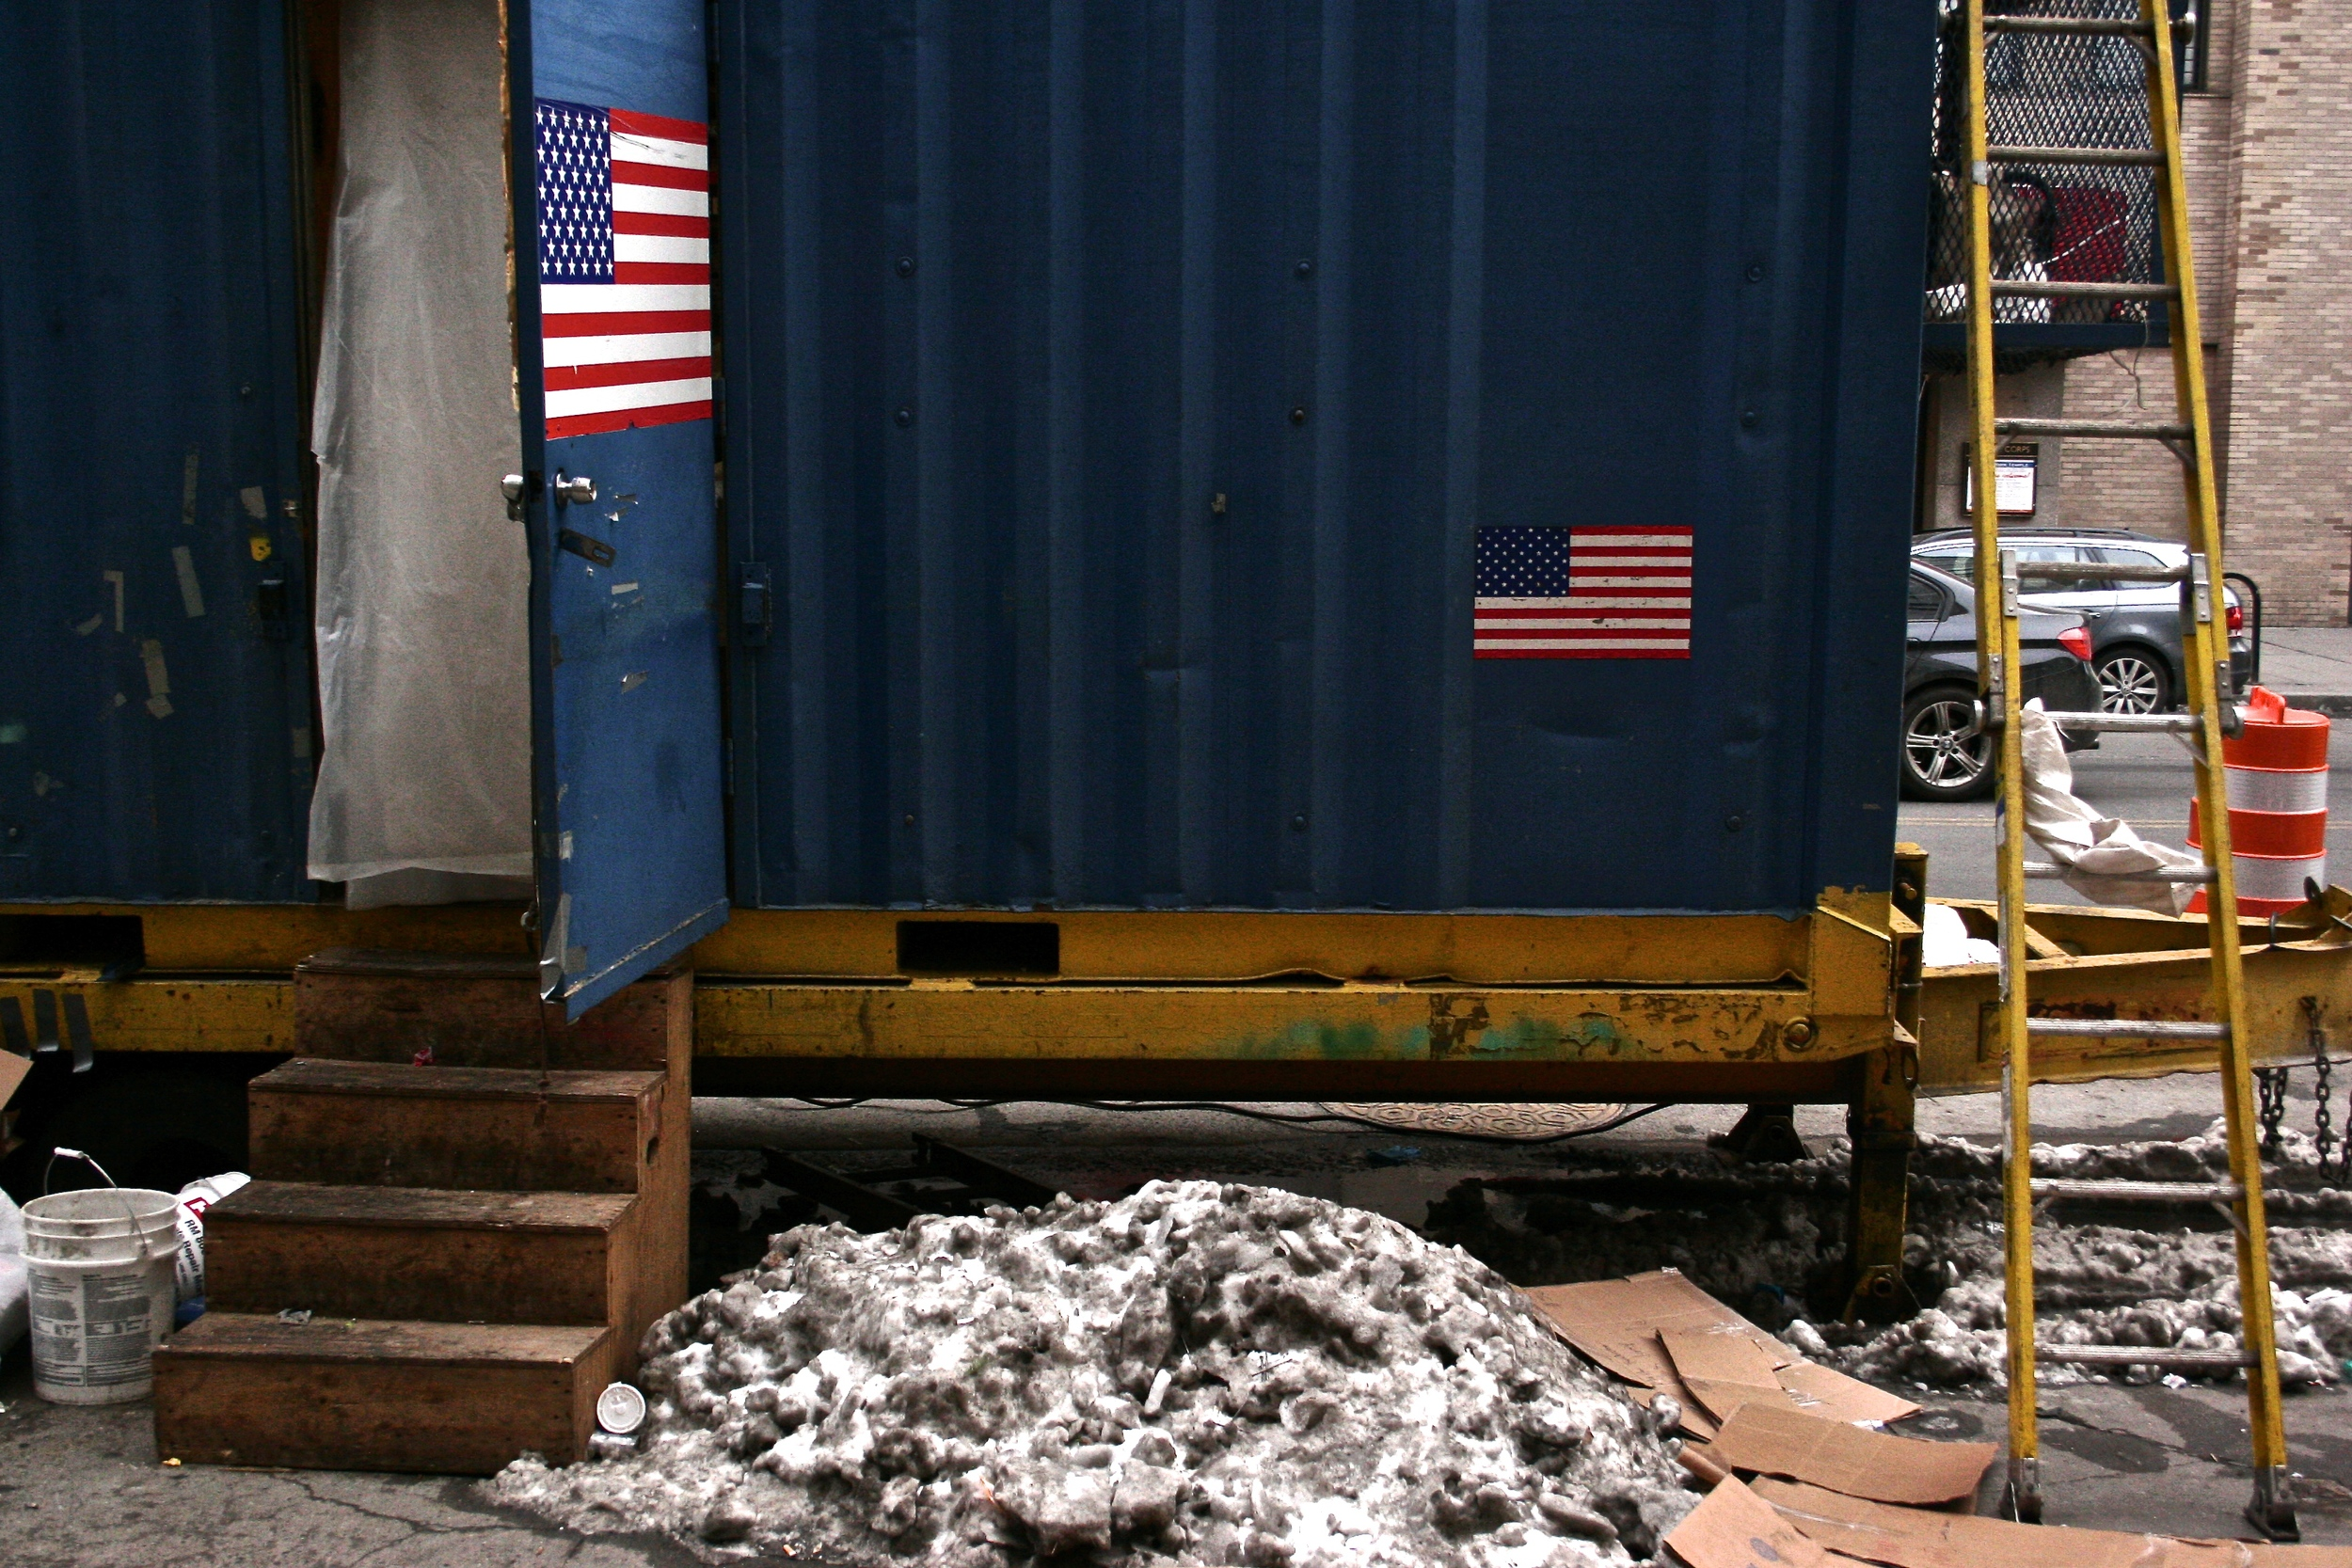 nyc-work-trailer-with-amaerican-flag.jpg